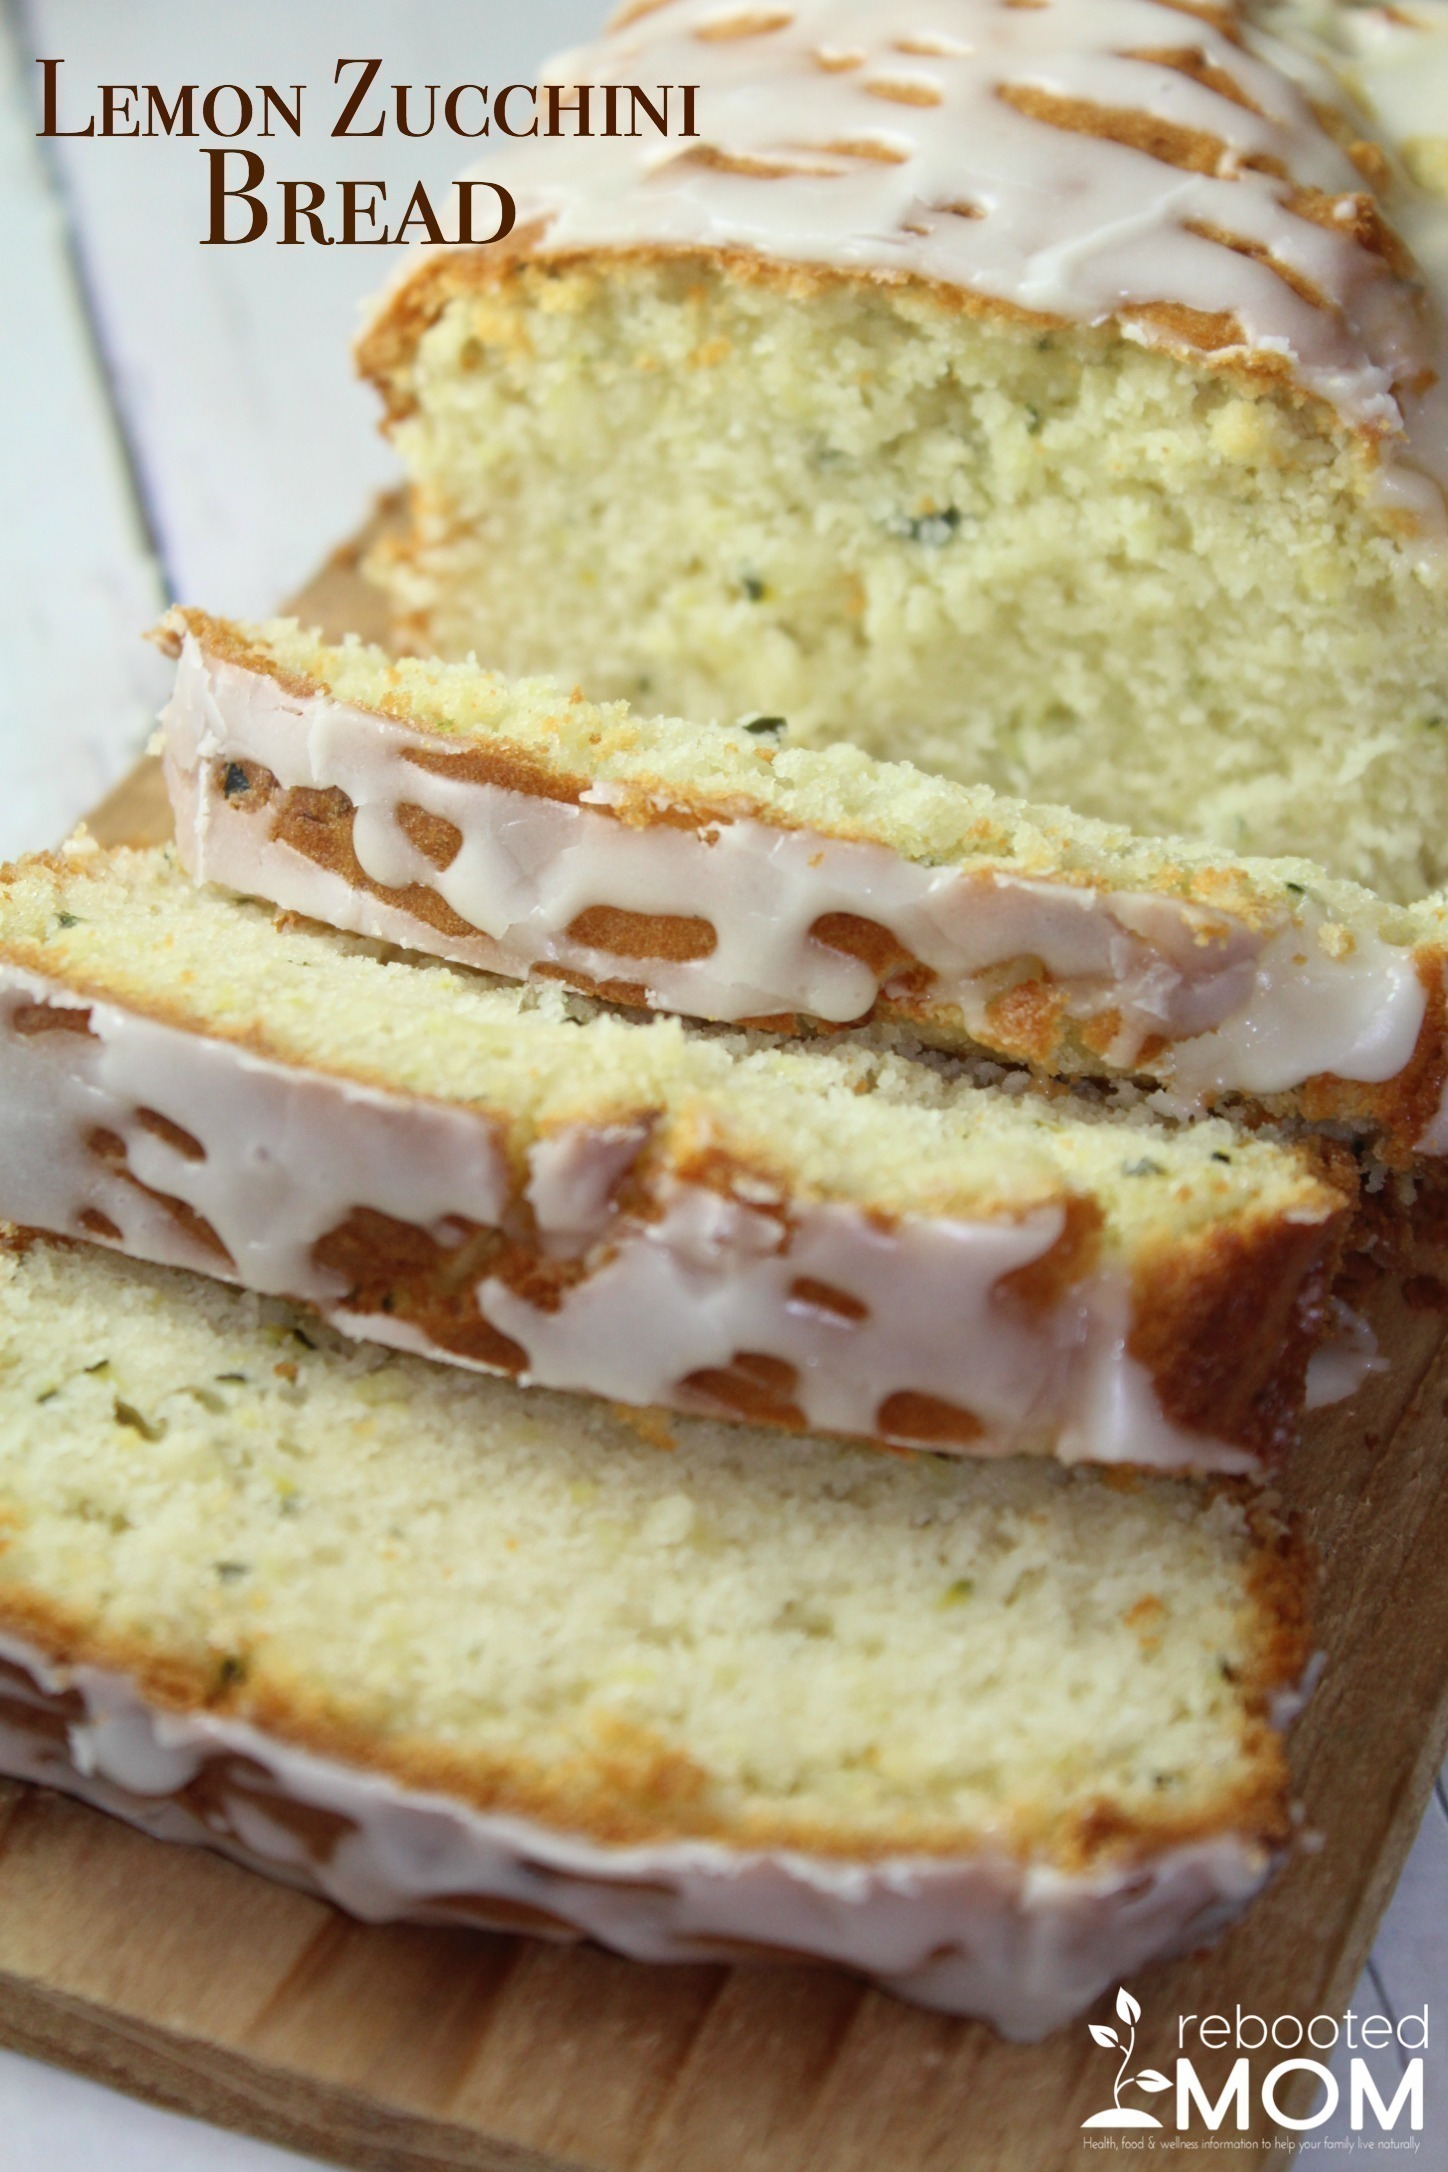 This Lemon Zucchini Bread with Essential Oils is a wonderful way to enjoy breakfast with a cup of coffee - this savory bread is speckled with zucchini with a light glaze.